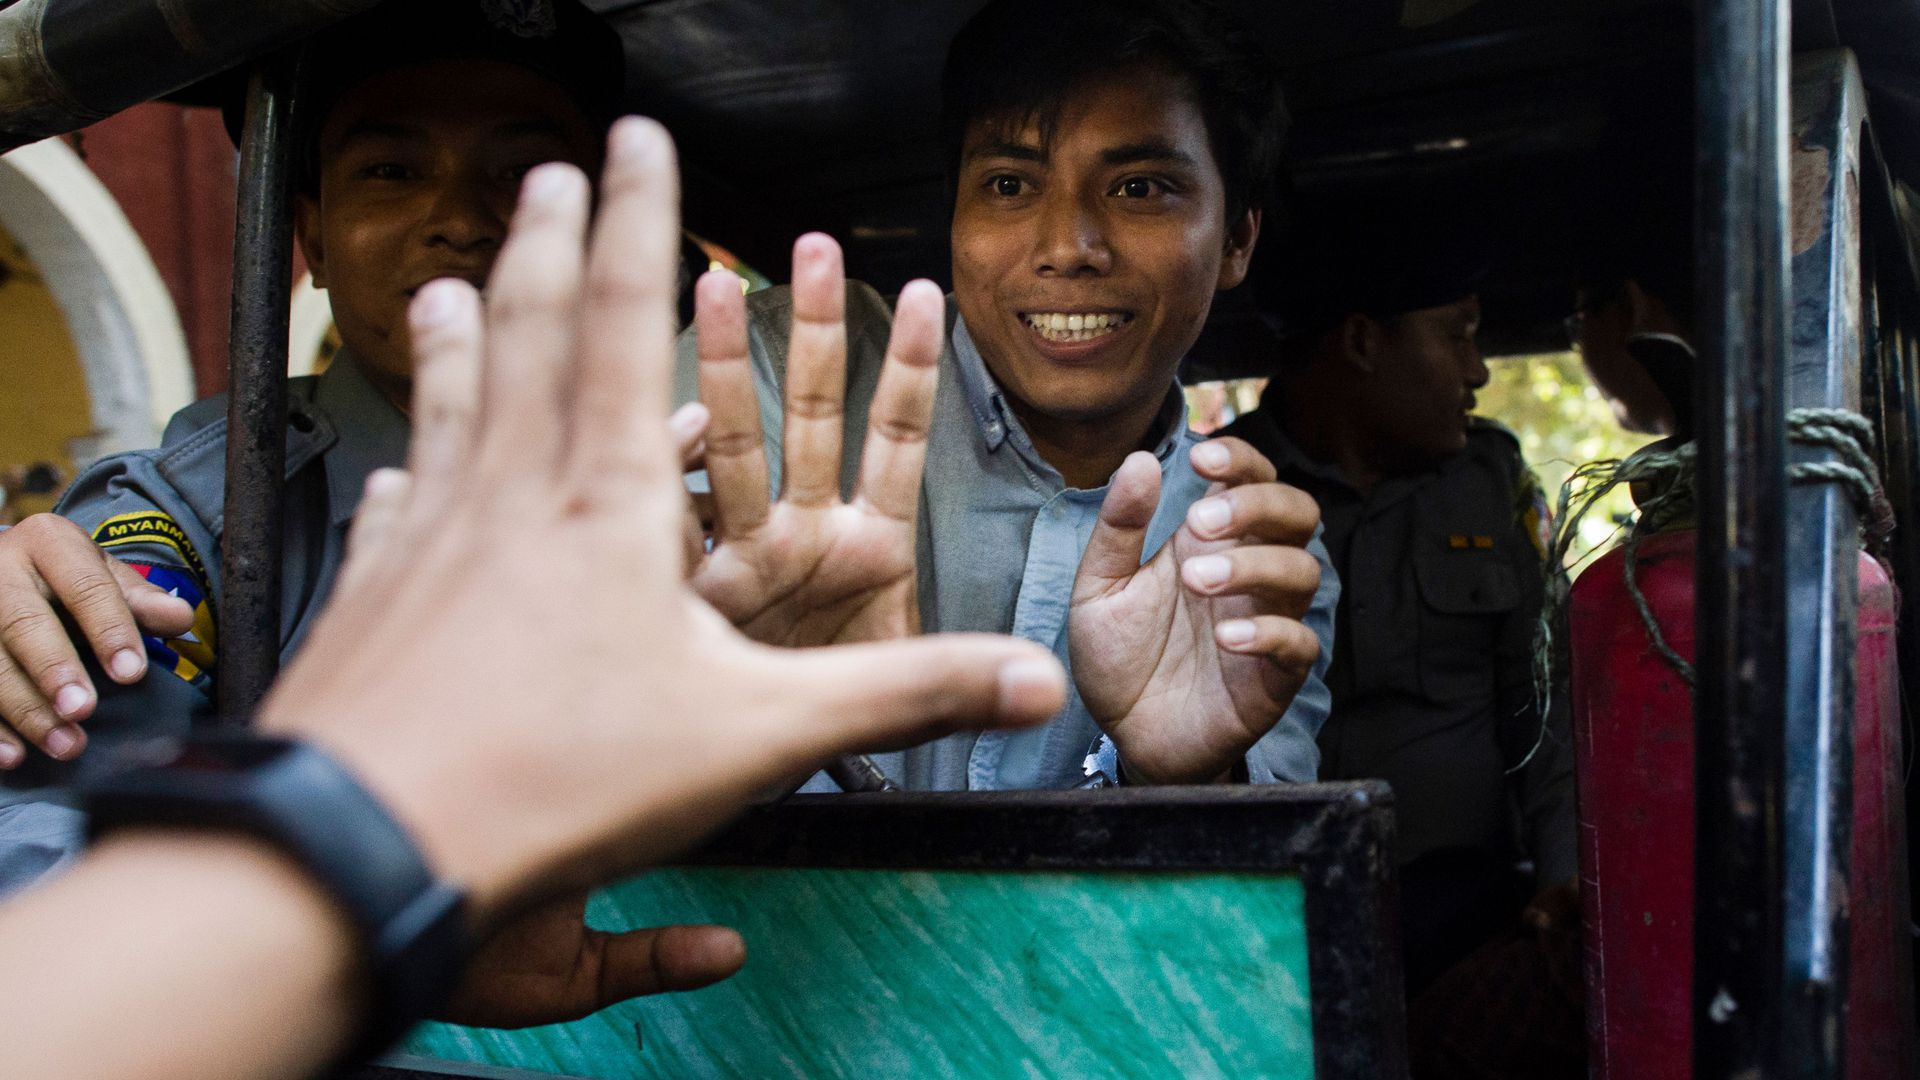 Reuters journalist Kyaw Soe Oo.